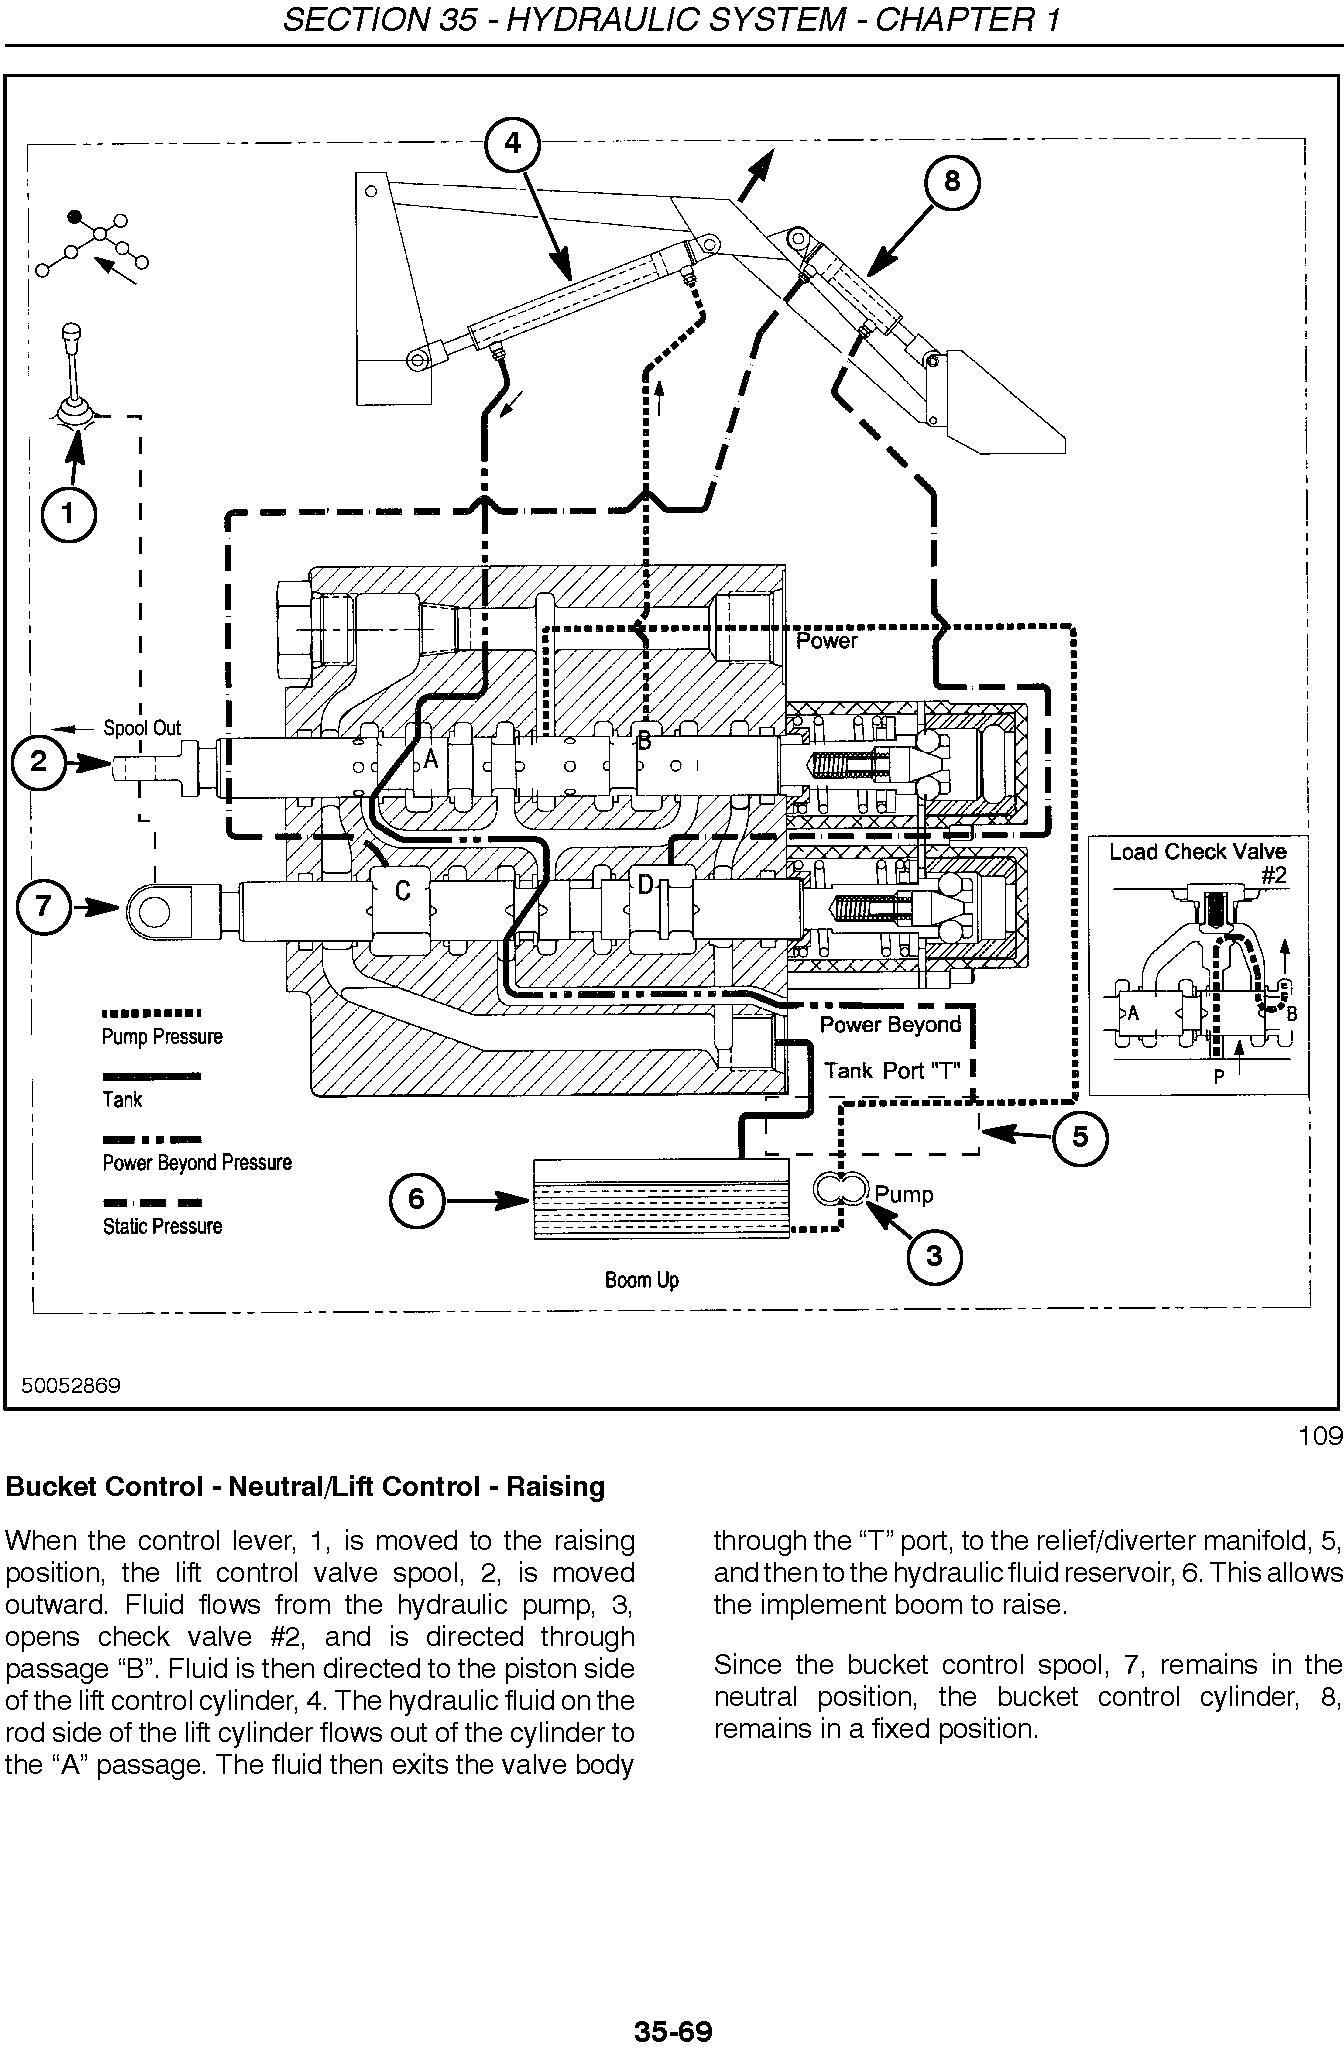 New Holland T2410, T2420 Tractor Service Manual - 3